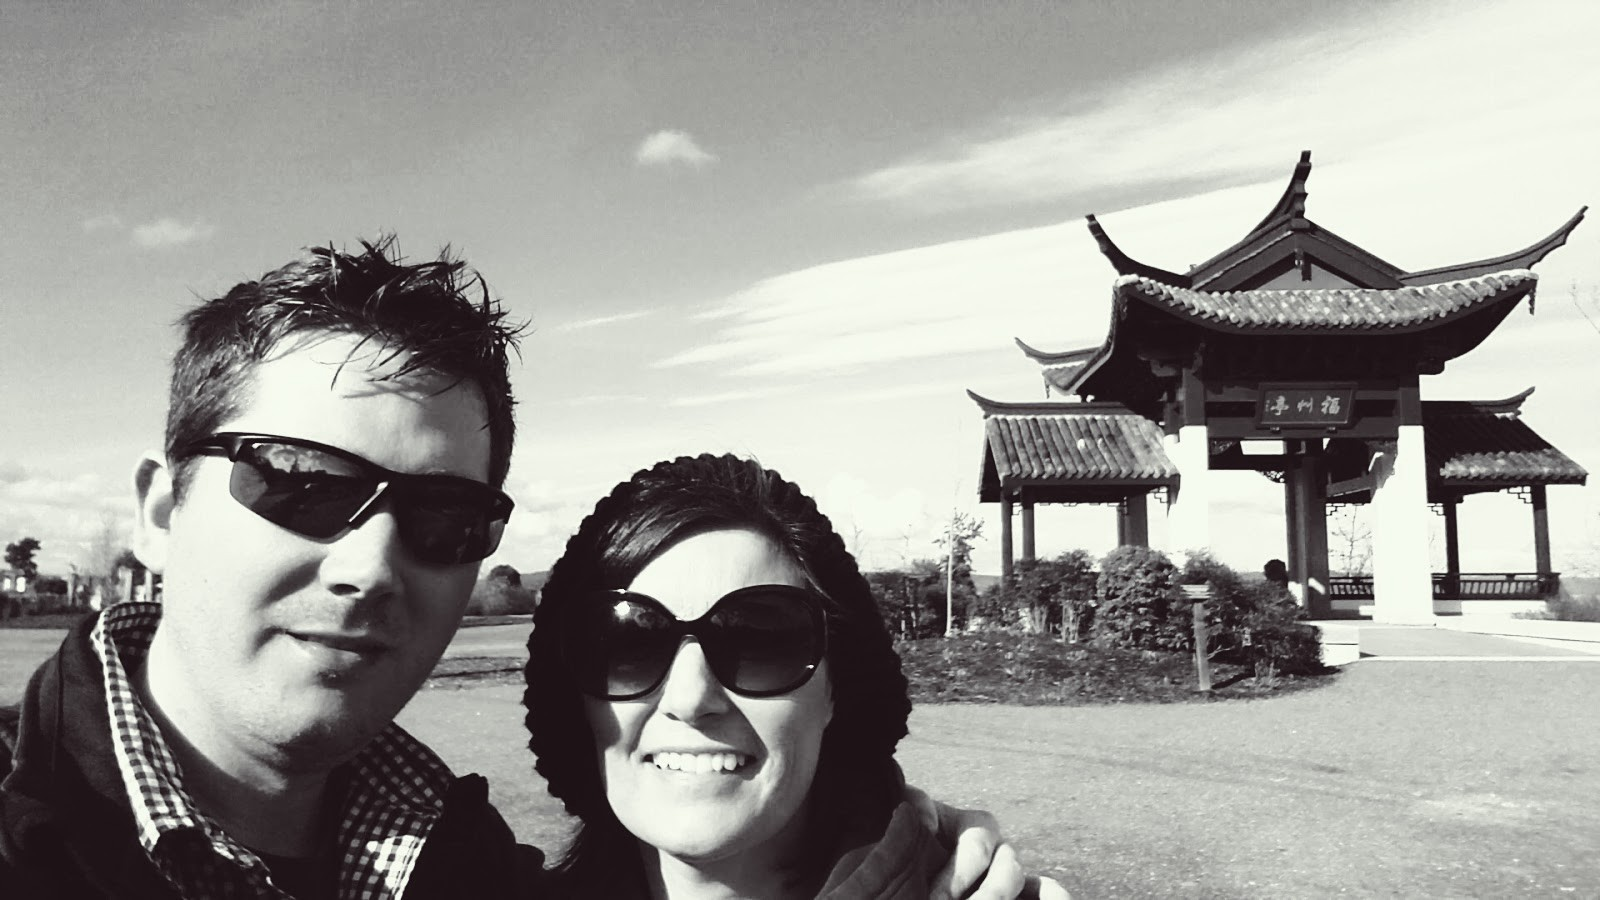 Us with the Chinese Reconciliation Park as background